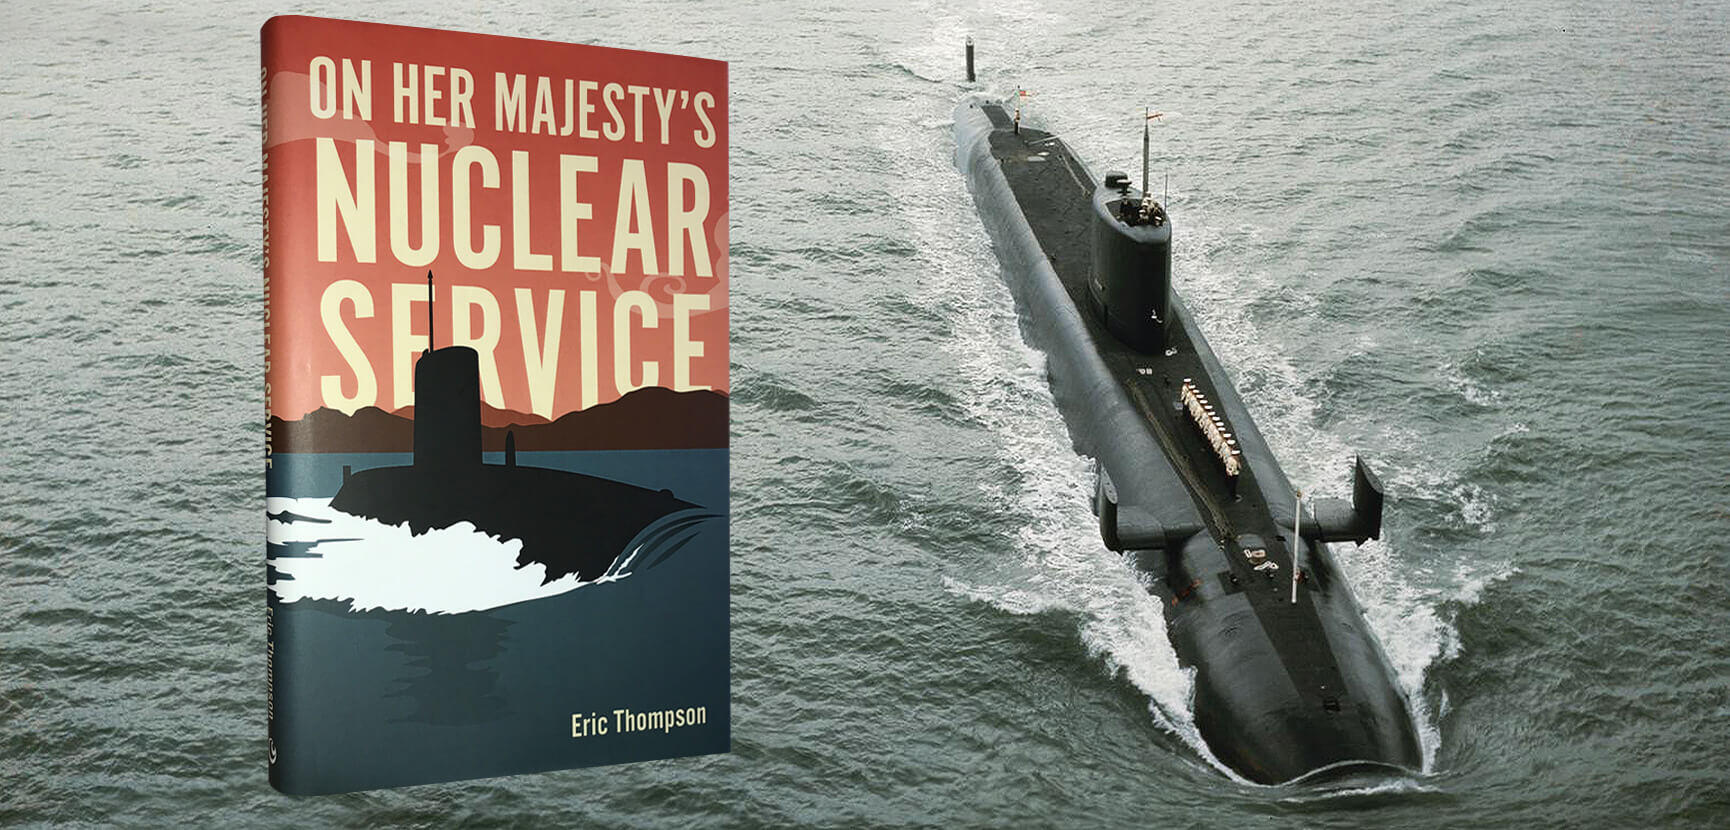 On Her Majesty's Nuclear Service – Book Review